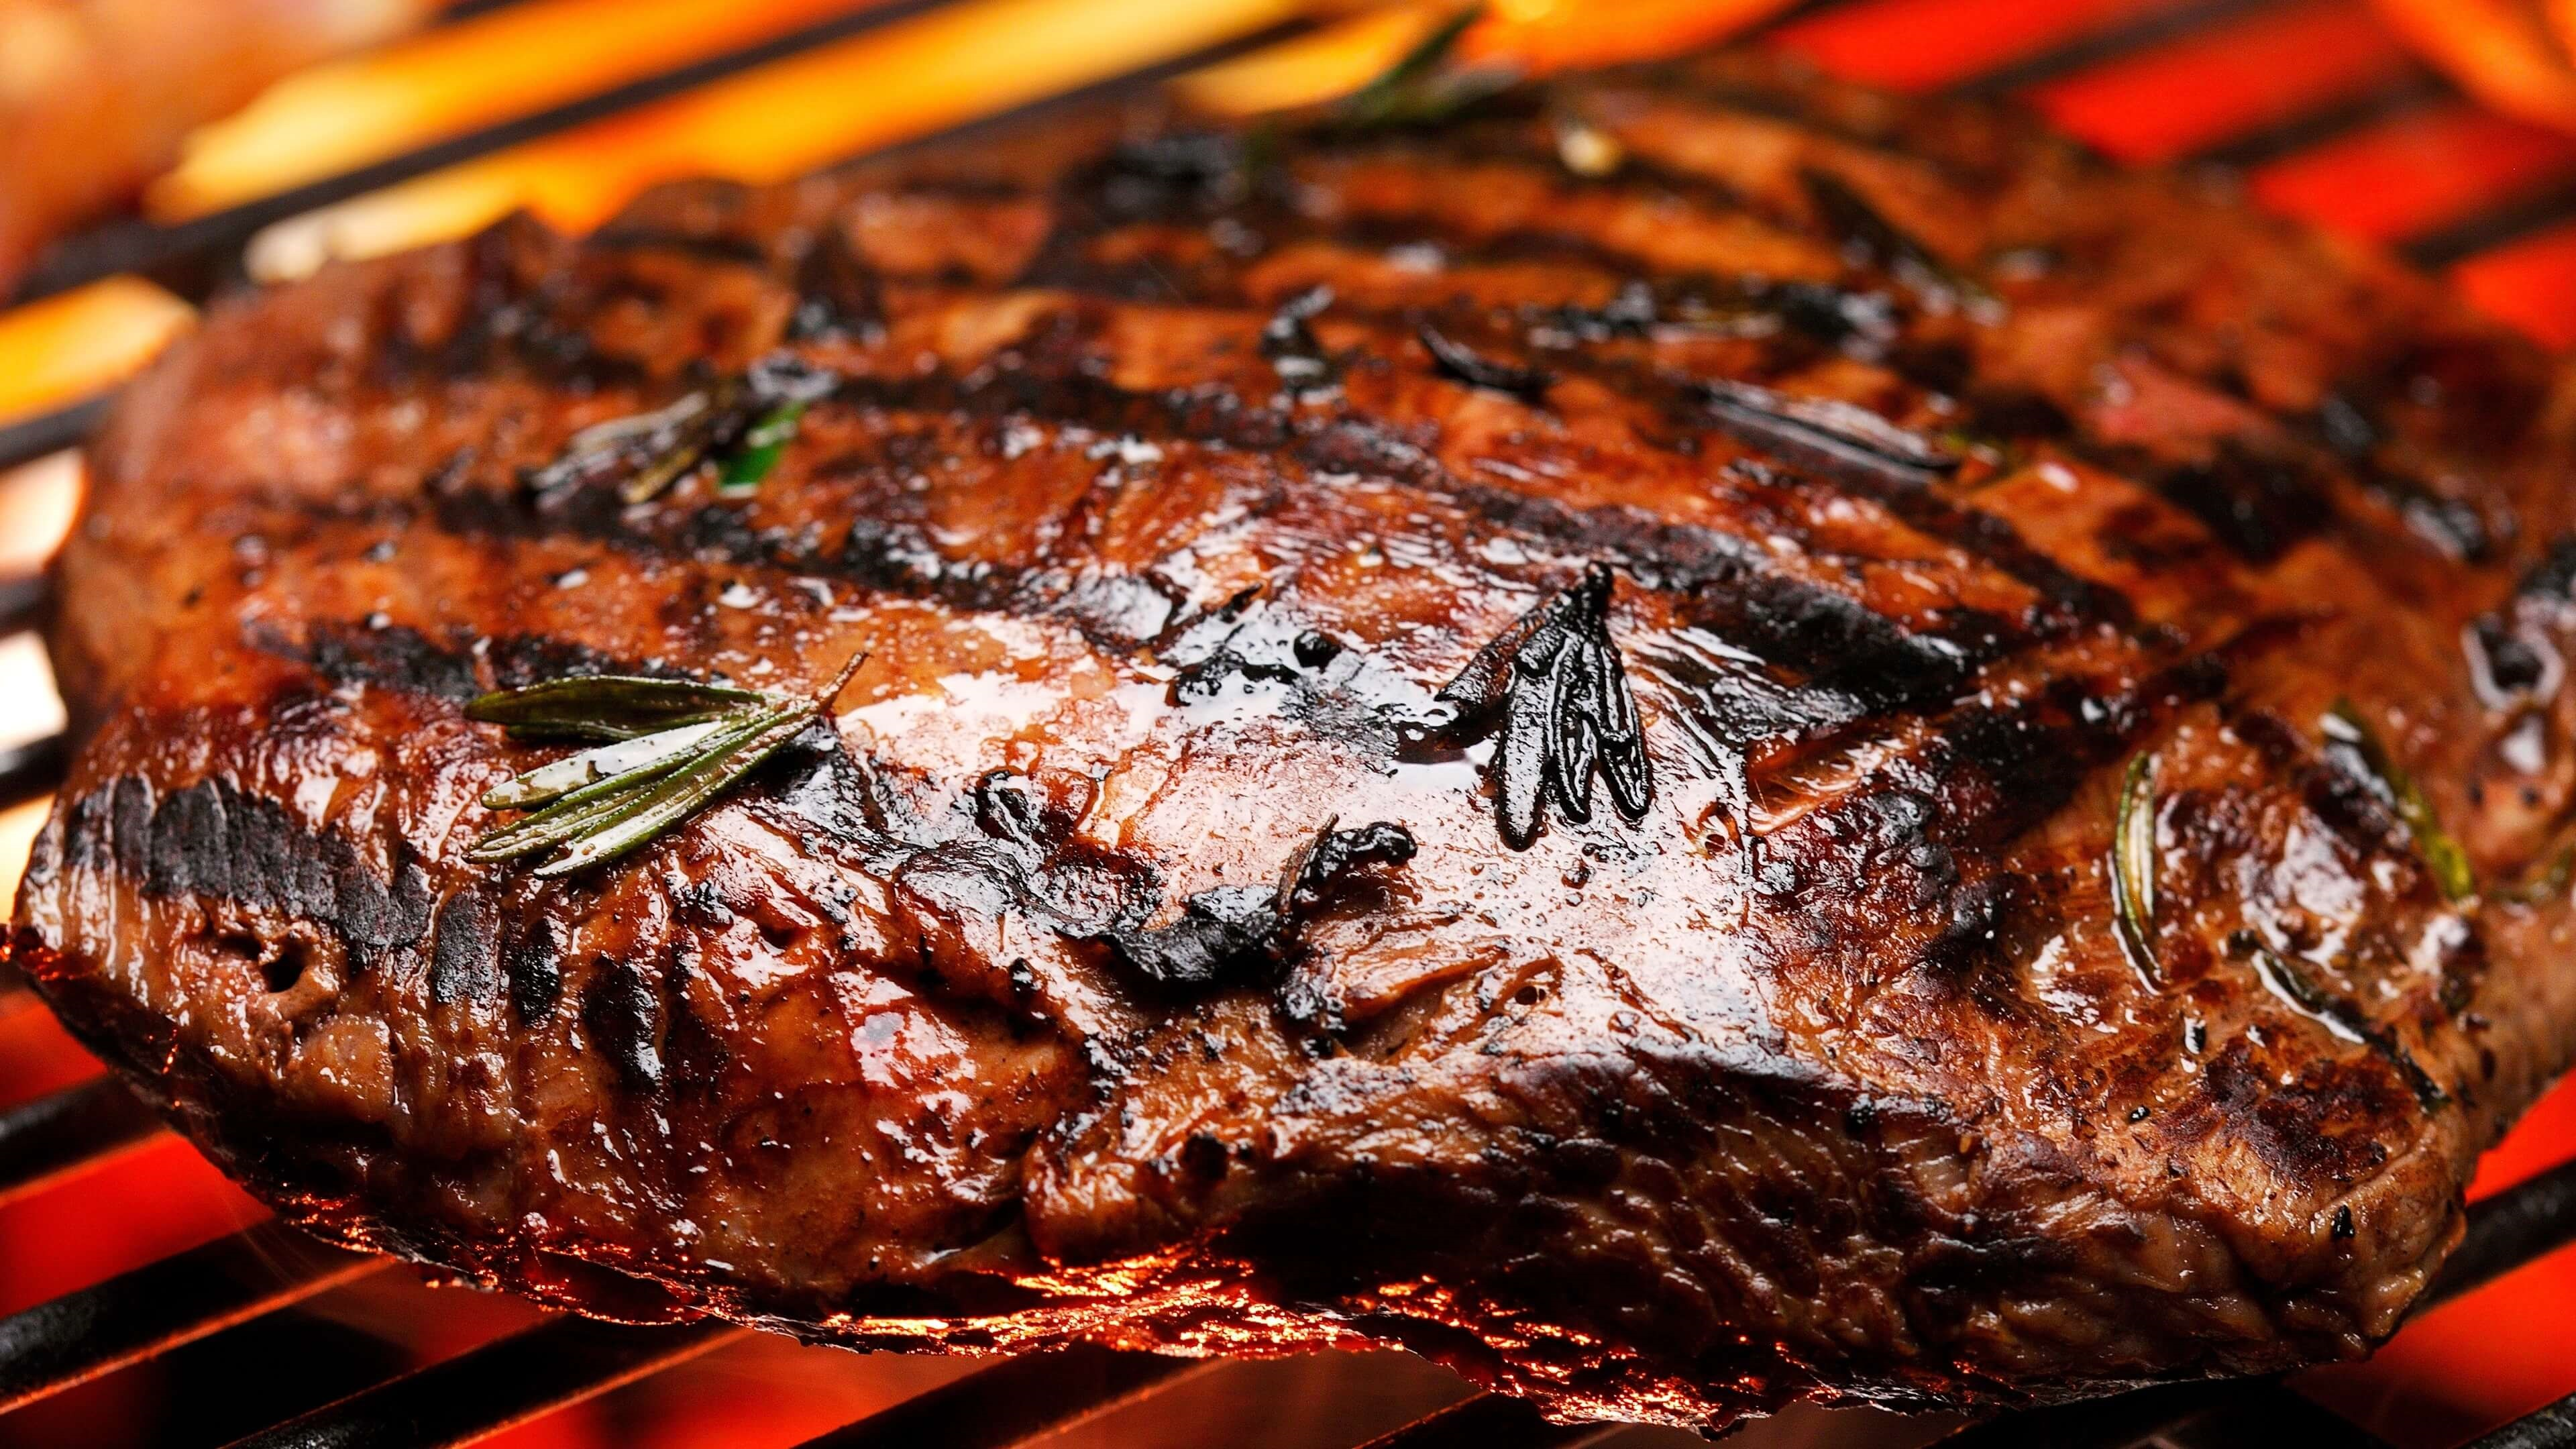 Grilled steak on barbeque